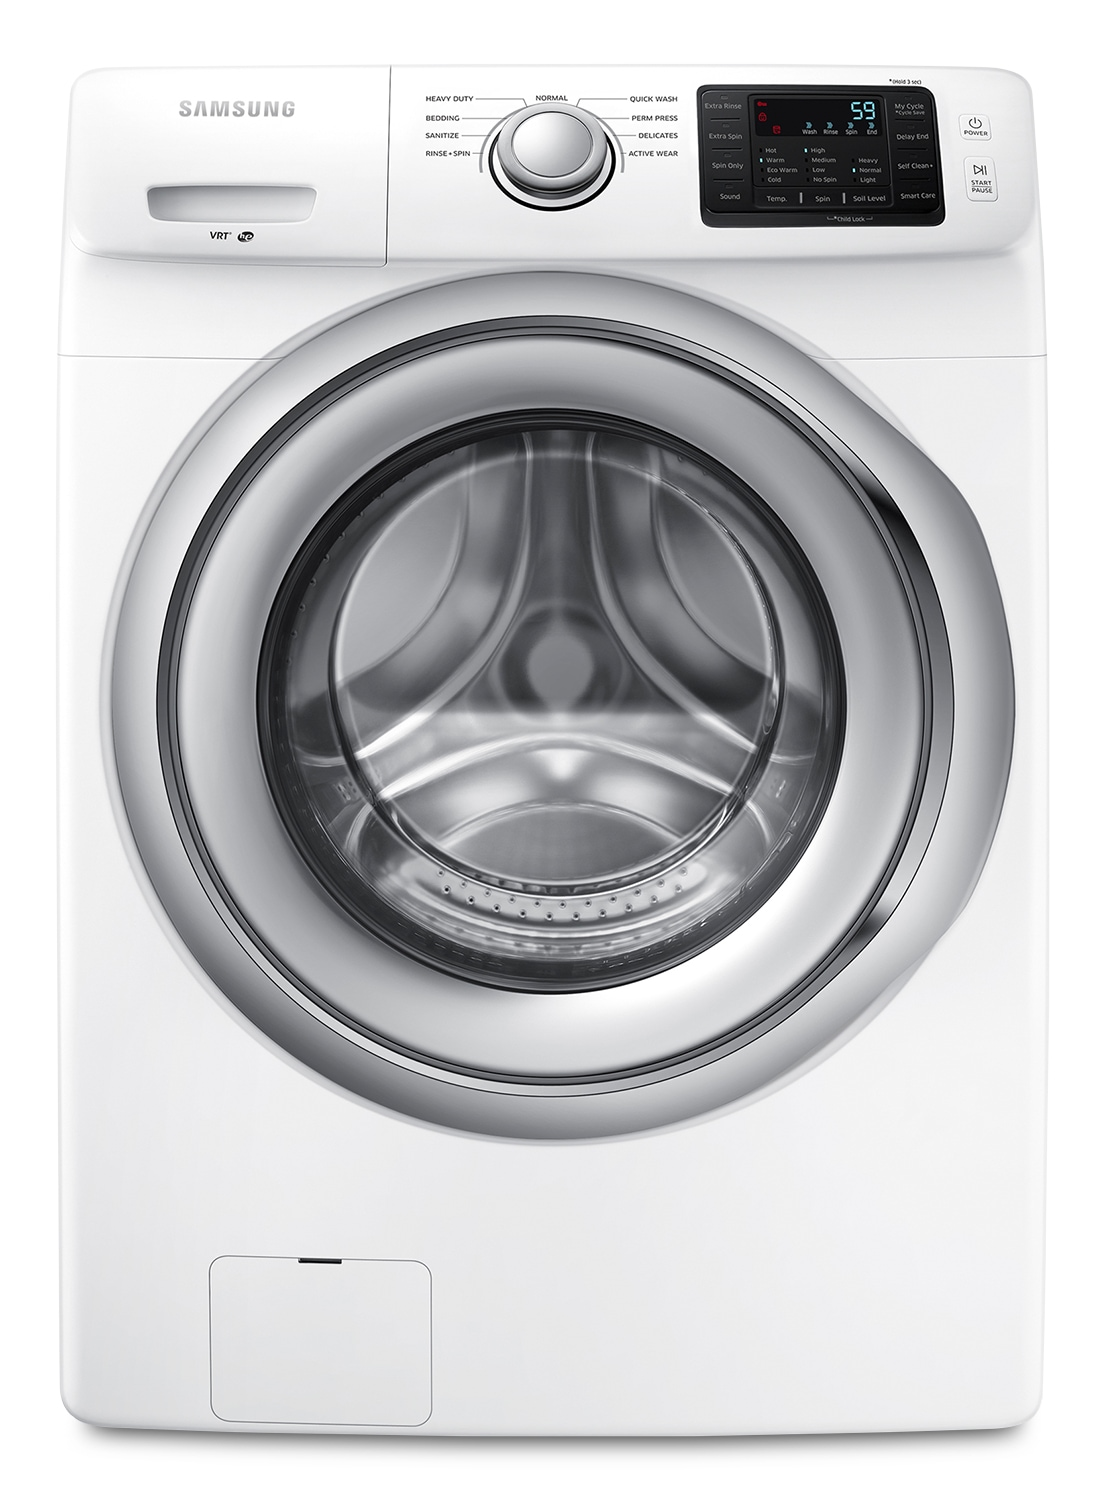 Washers and Dryers - Samsung White Front-Load Washer (4.8 Cu. Ft. IEC) - WF42H5100AW